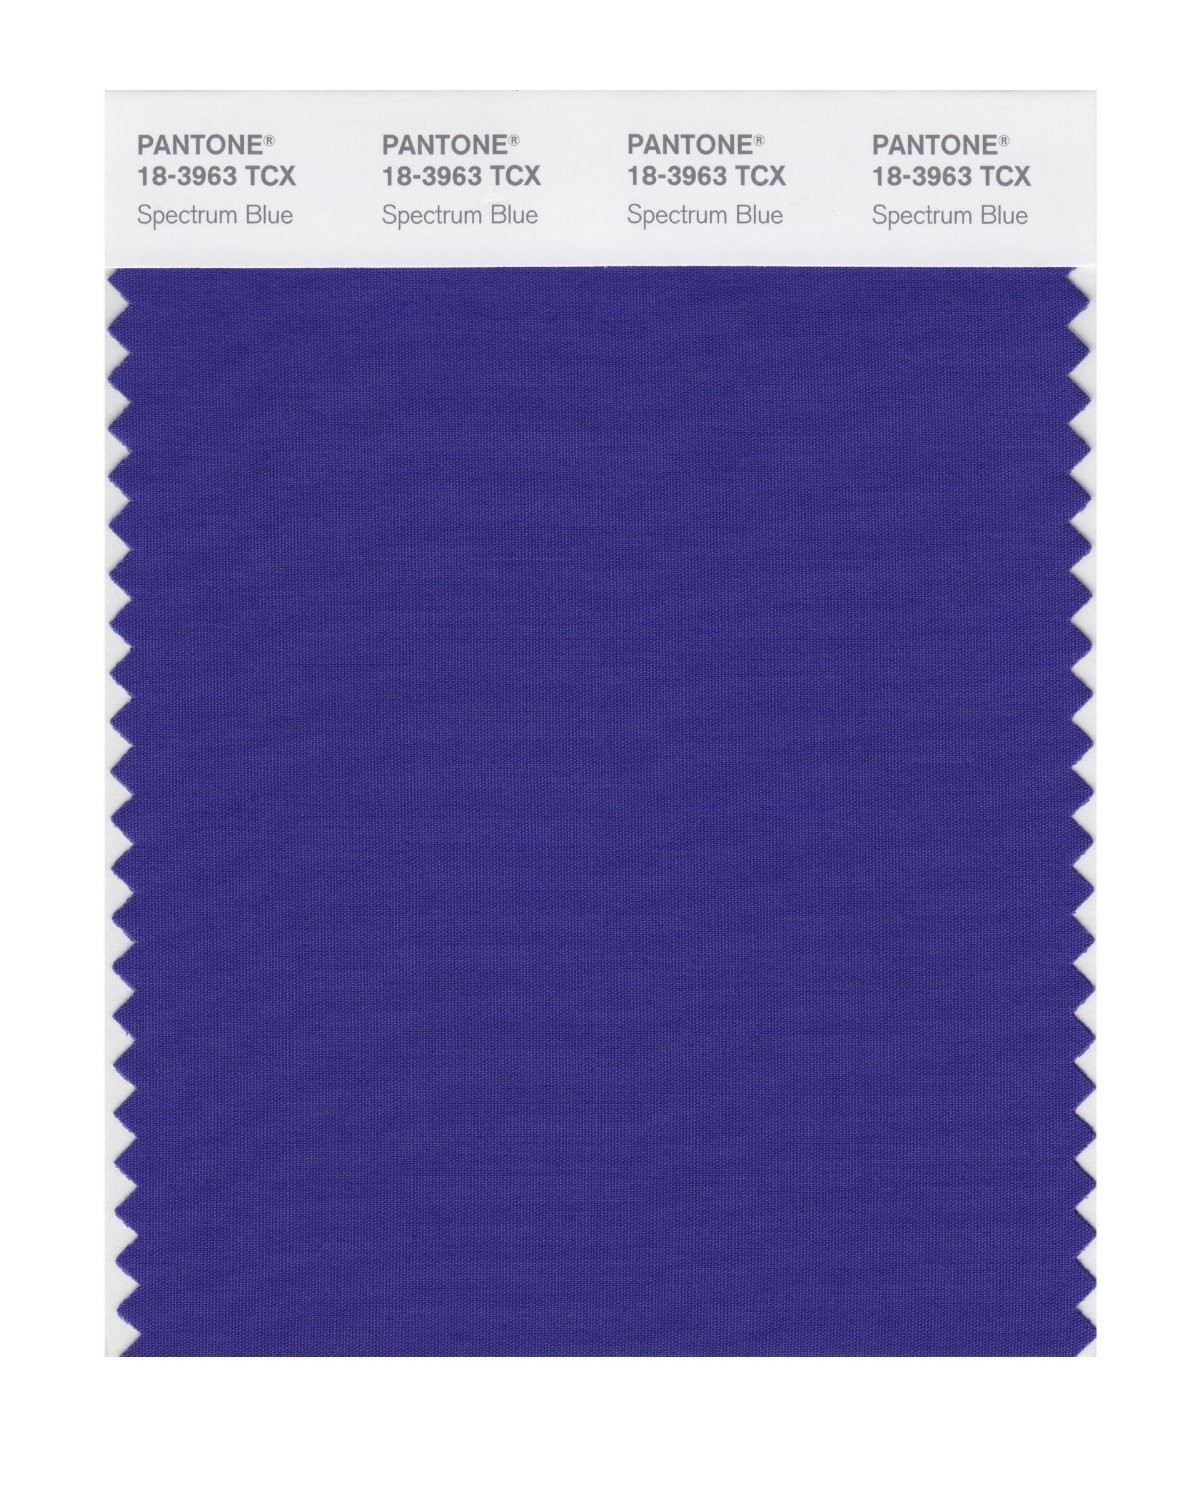 Pantone 18-3963 TCX Swatch Card Spectrum Blue